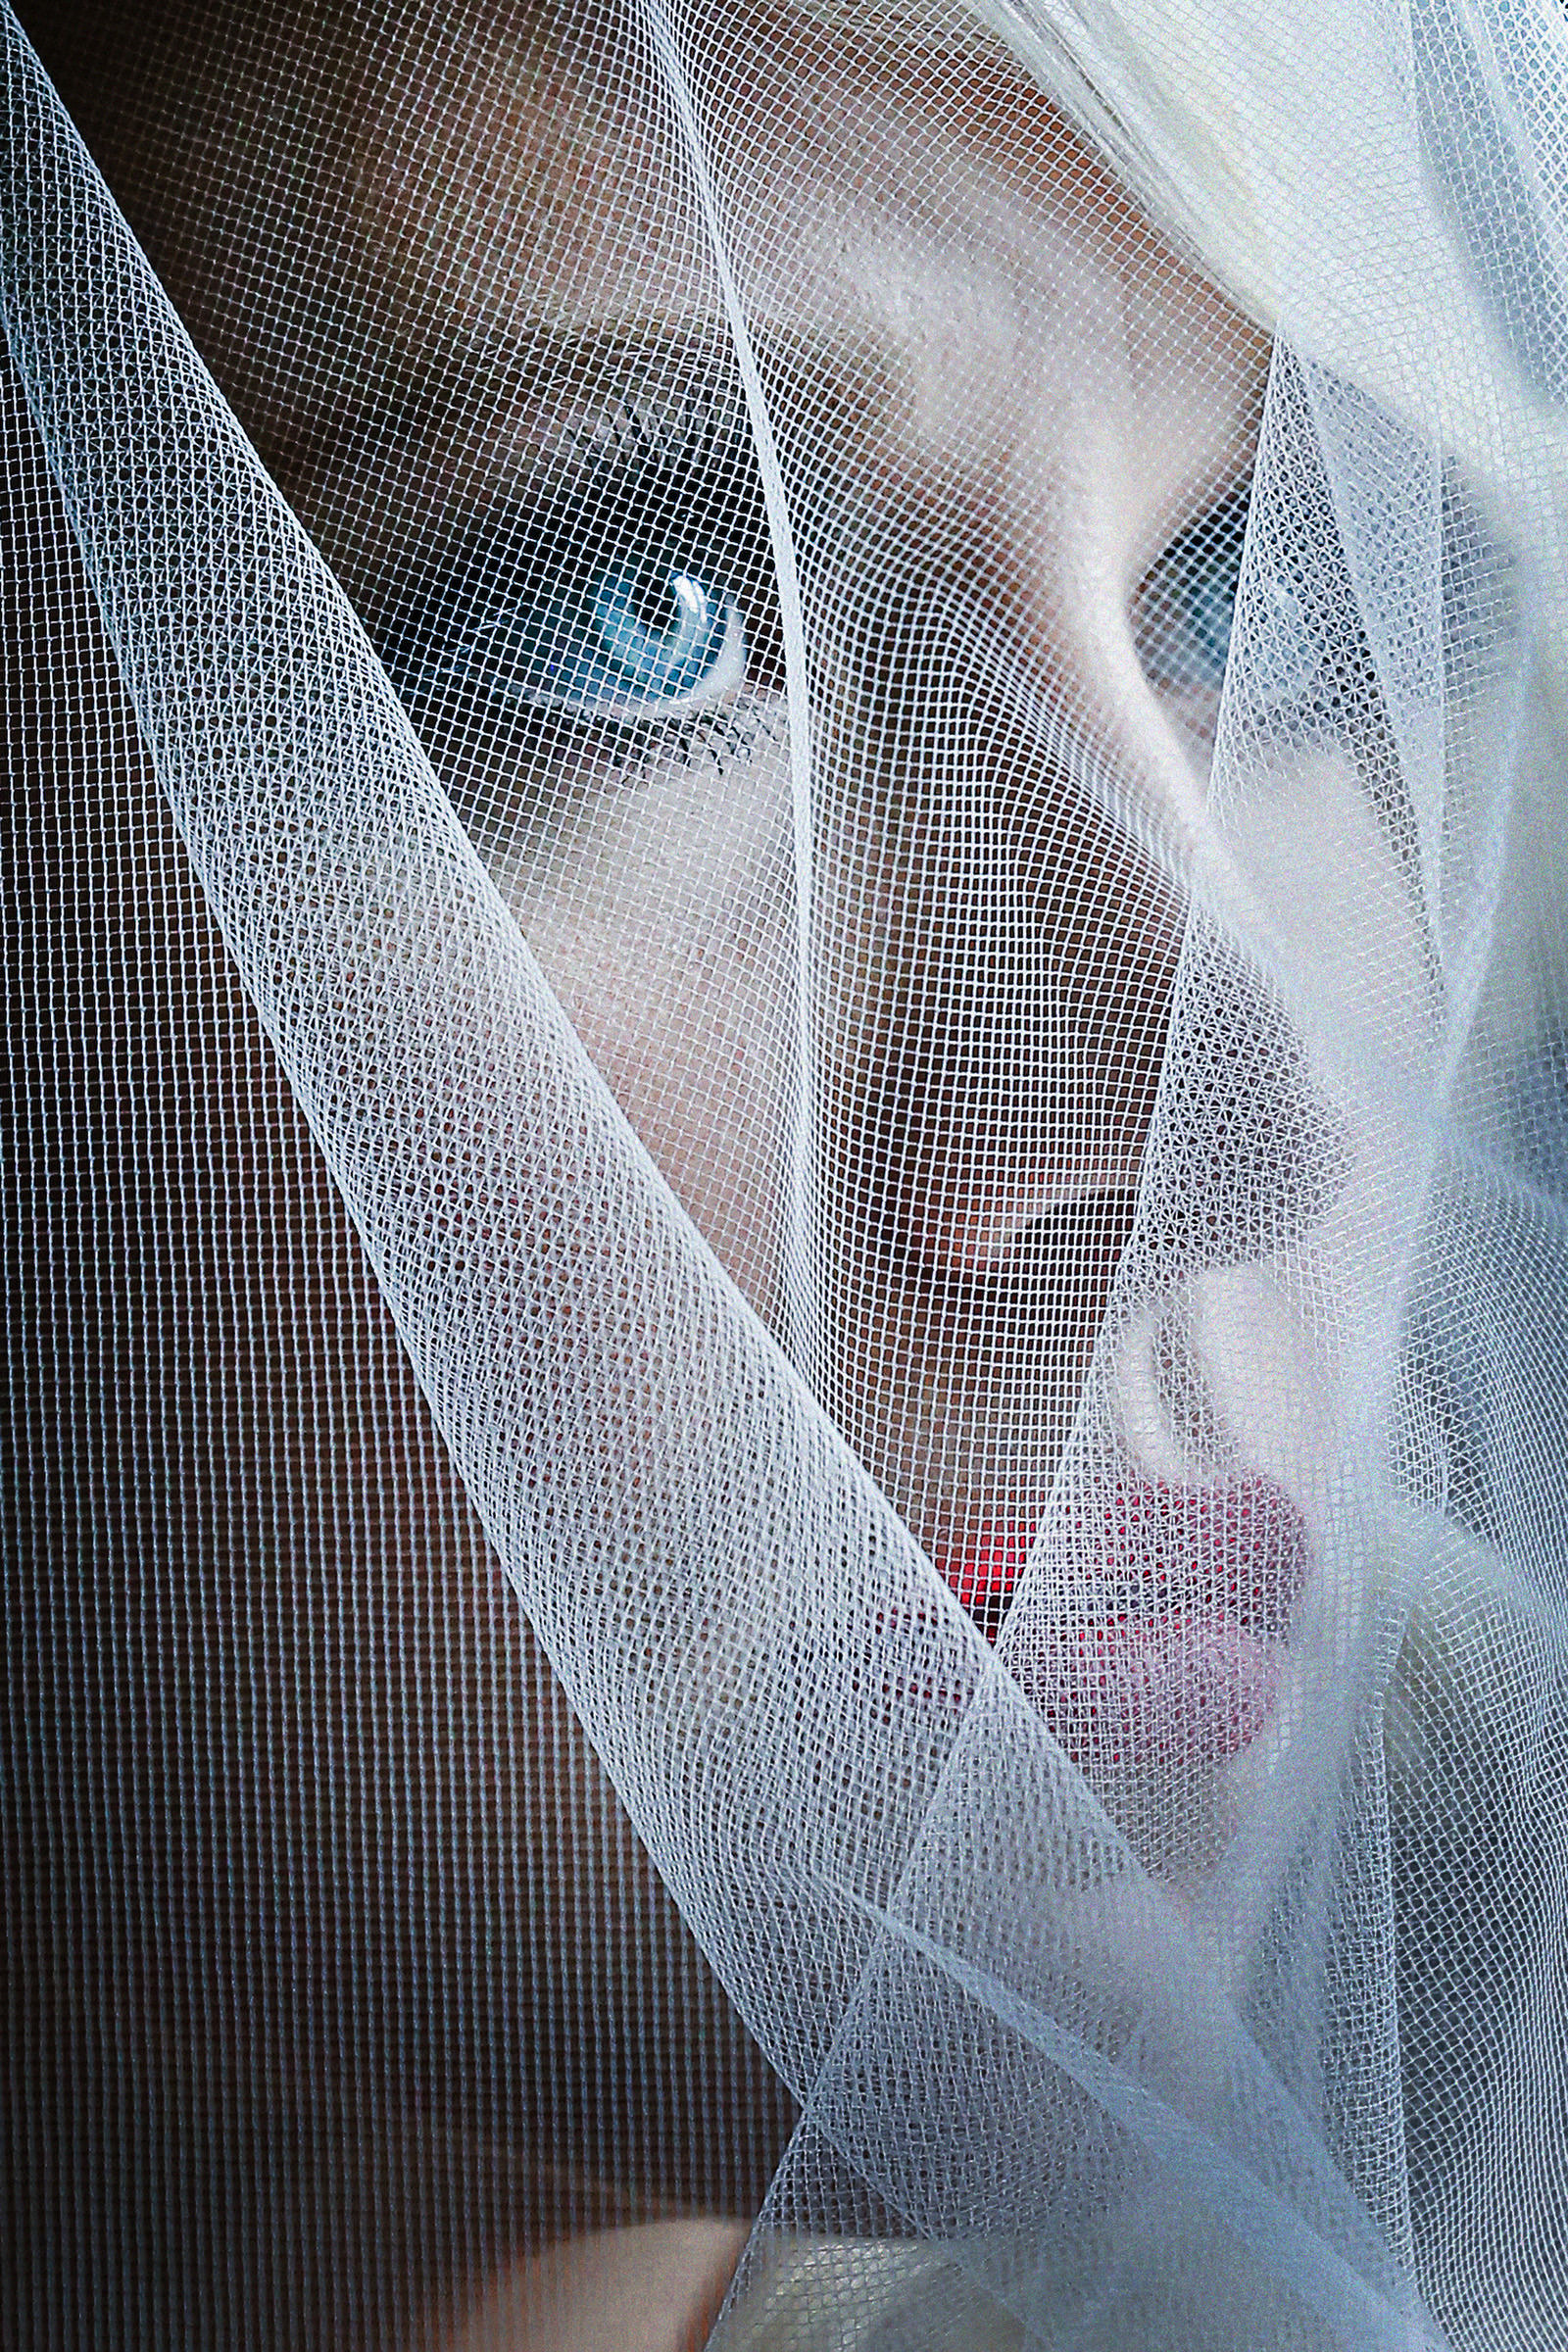 Portrait of bride with startling blue eyes under veil, by Franck Boutonnet